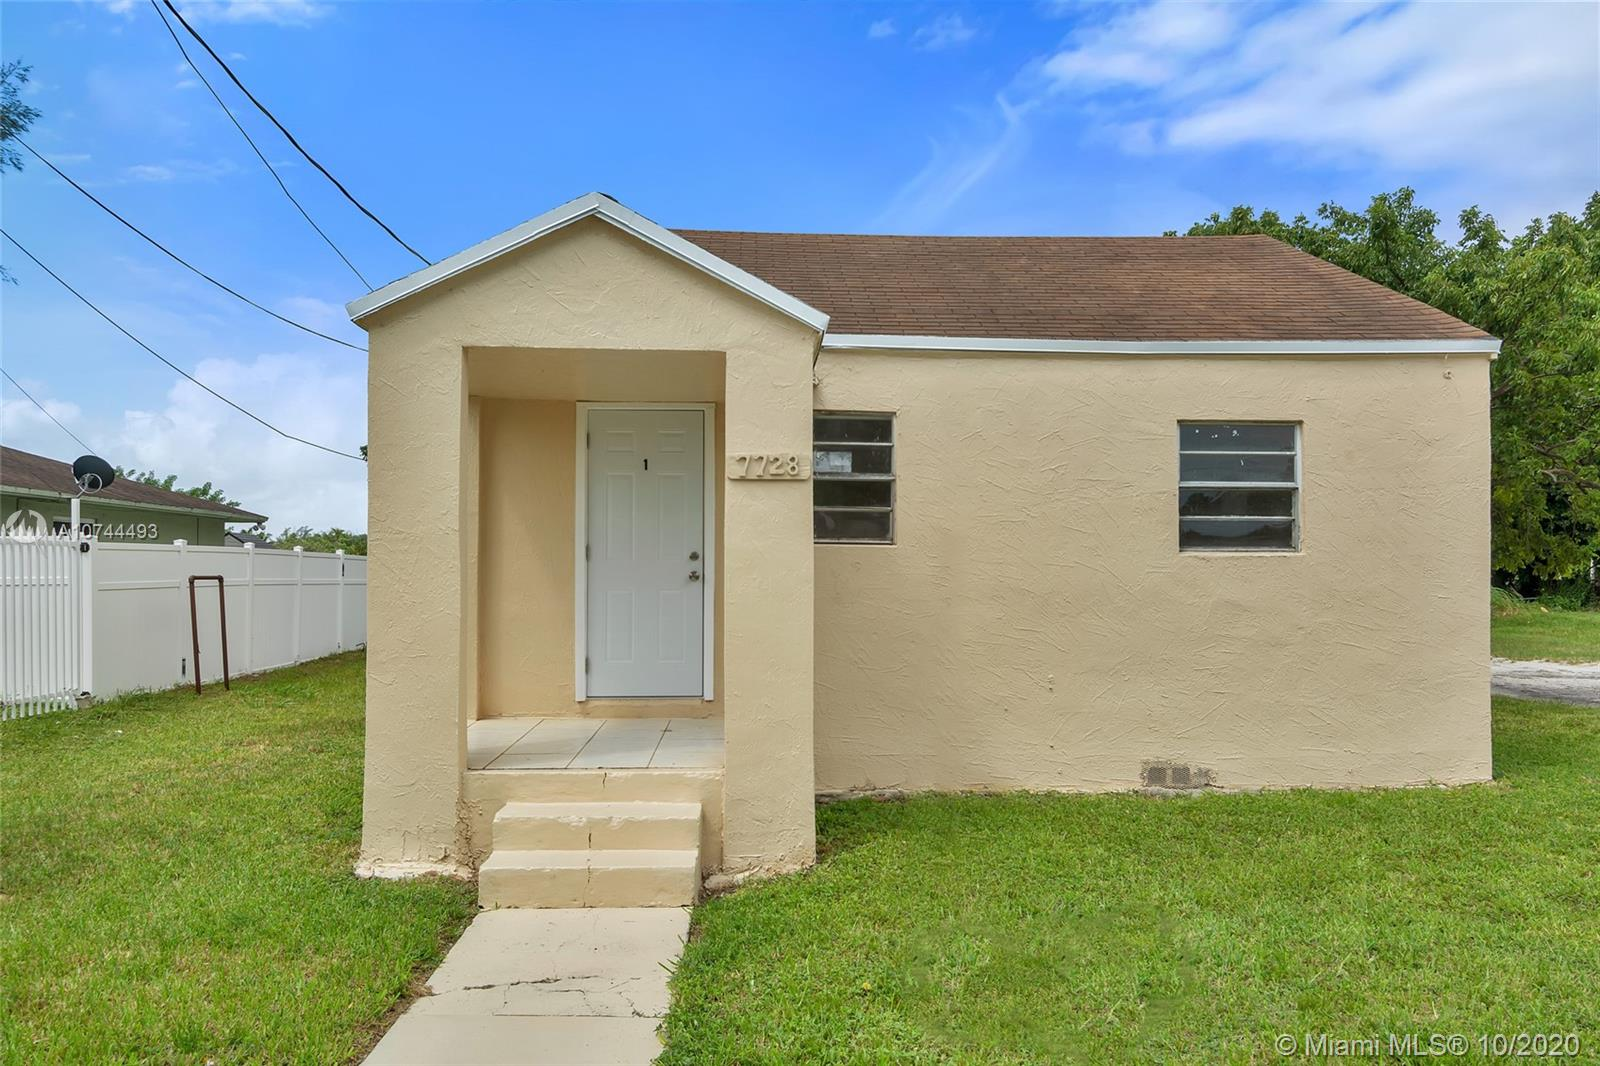 7728 NW 17th Pl  For Sale A10744493, FL